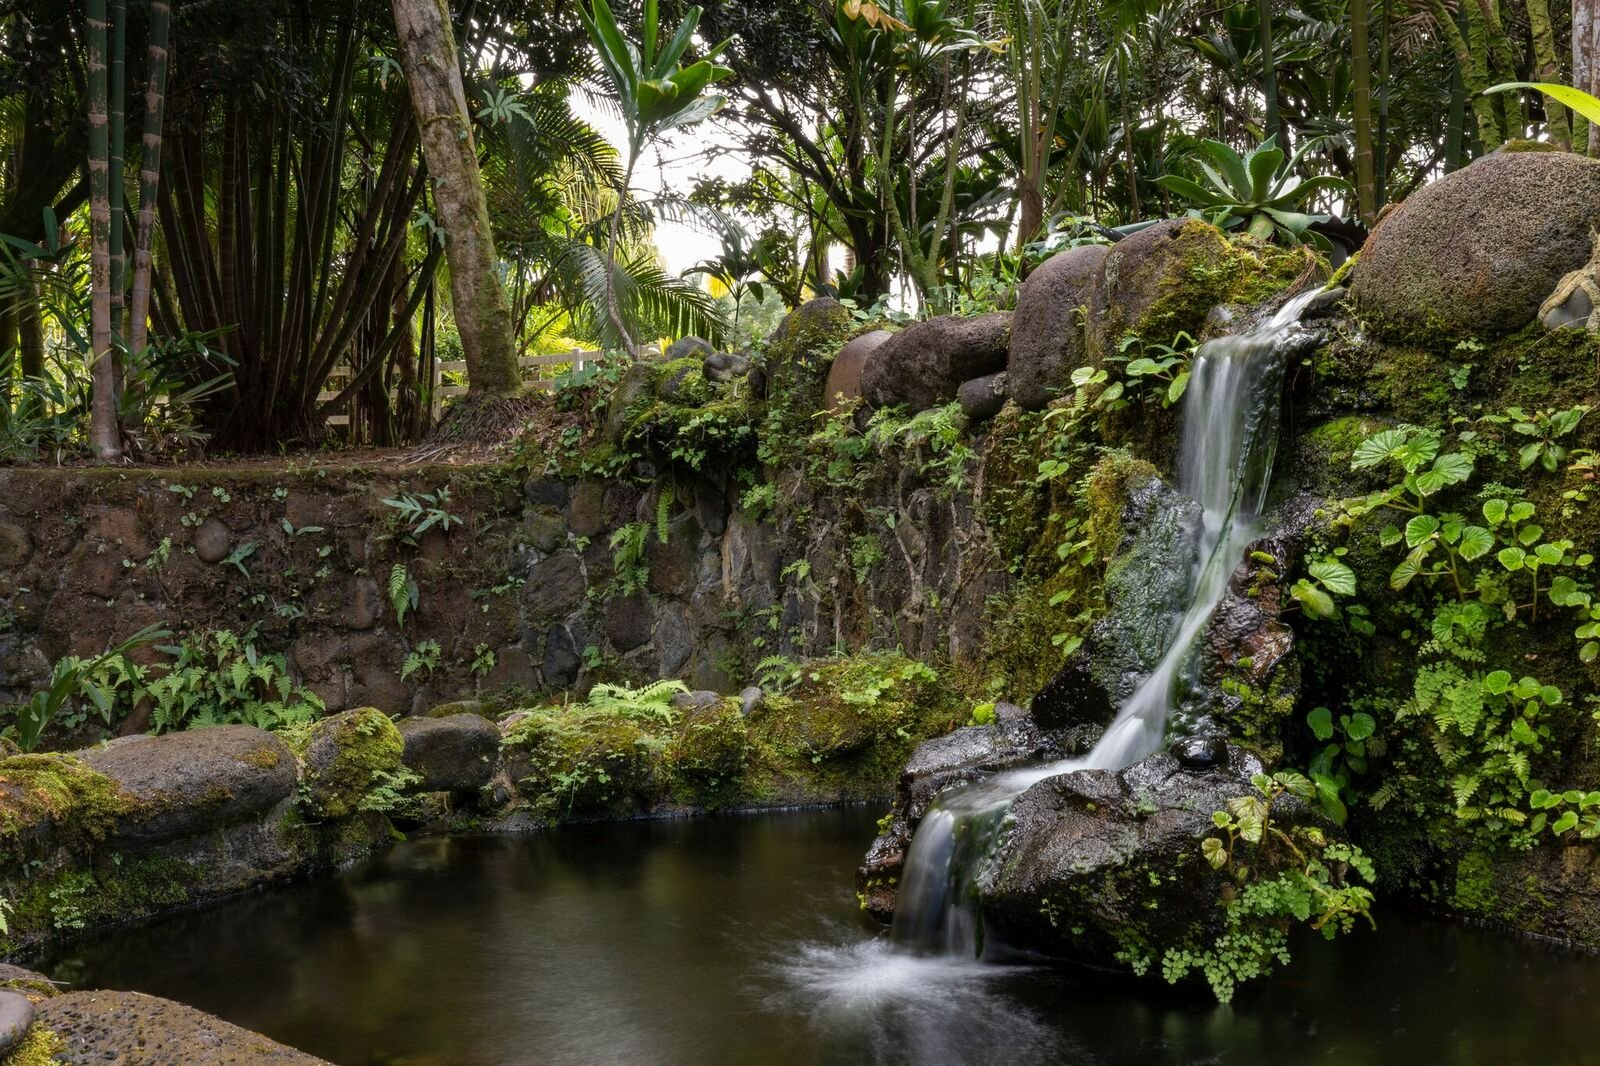 The landscaping and gardens are extensive including a man-made water fall and pond system.